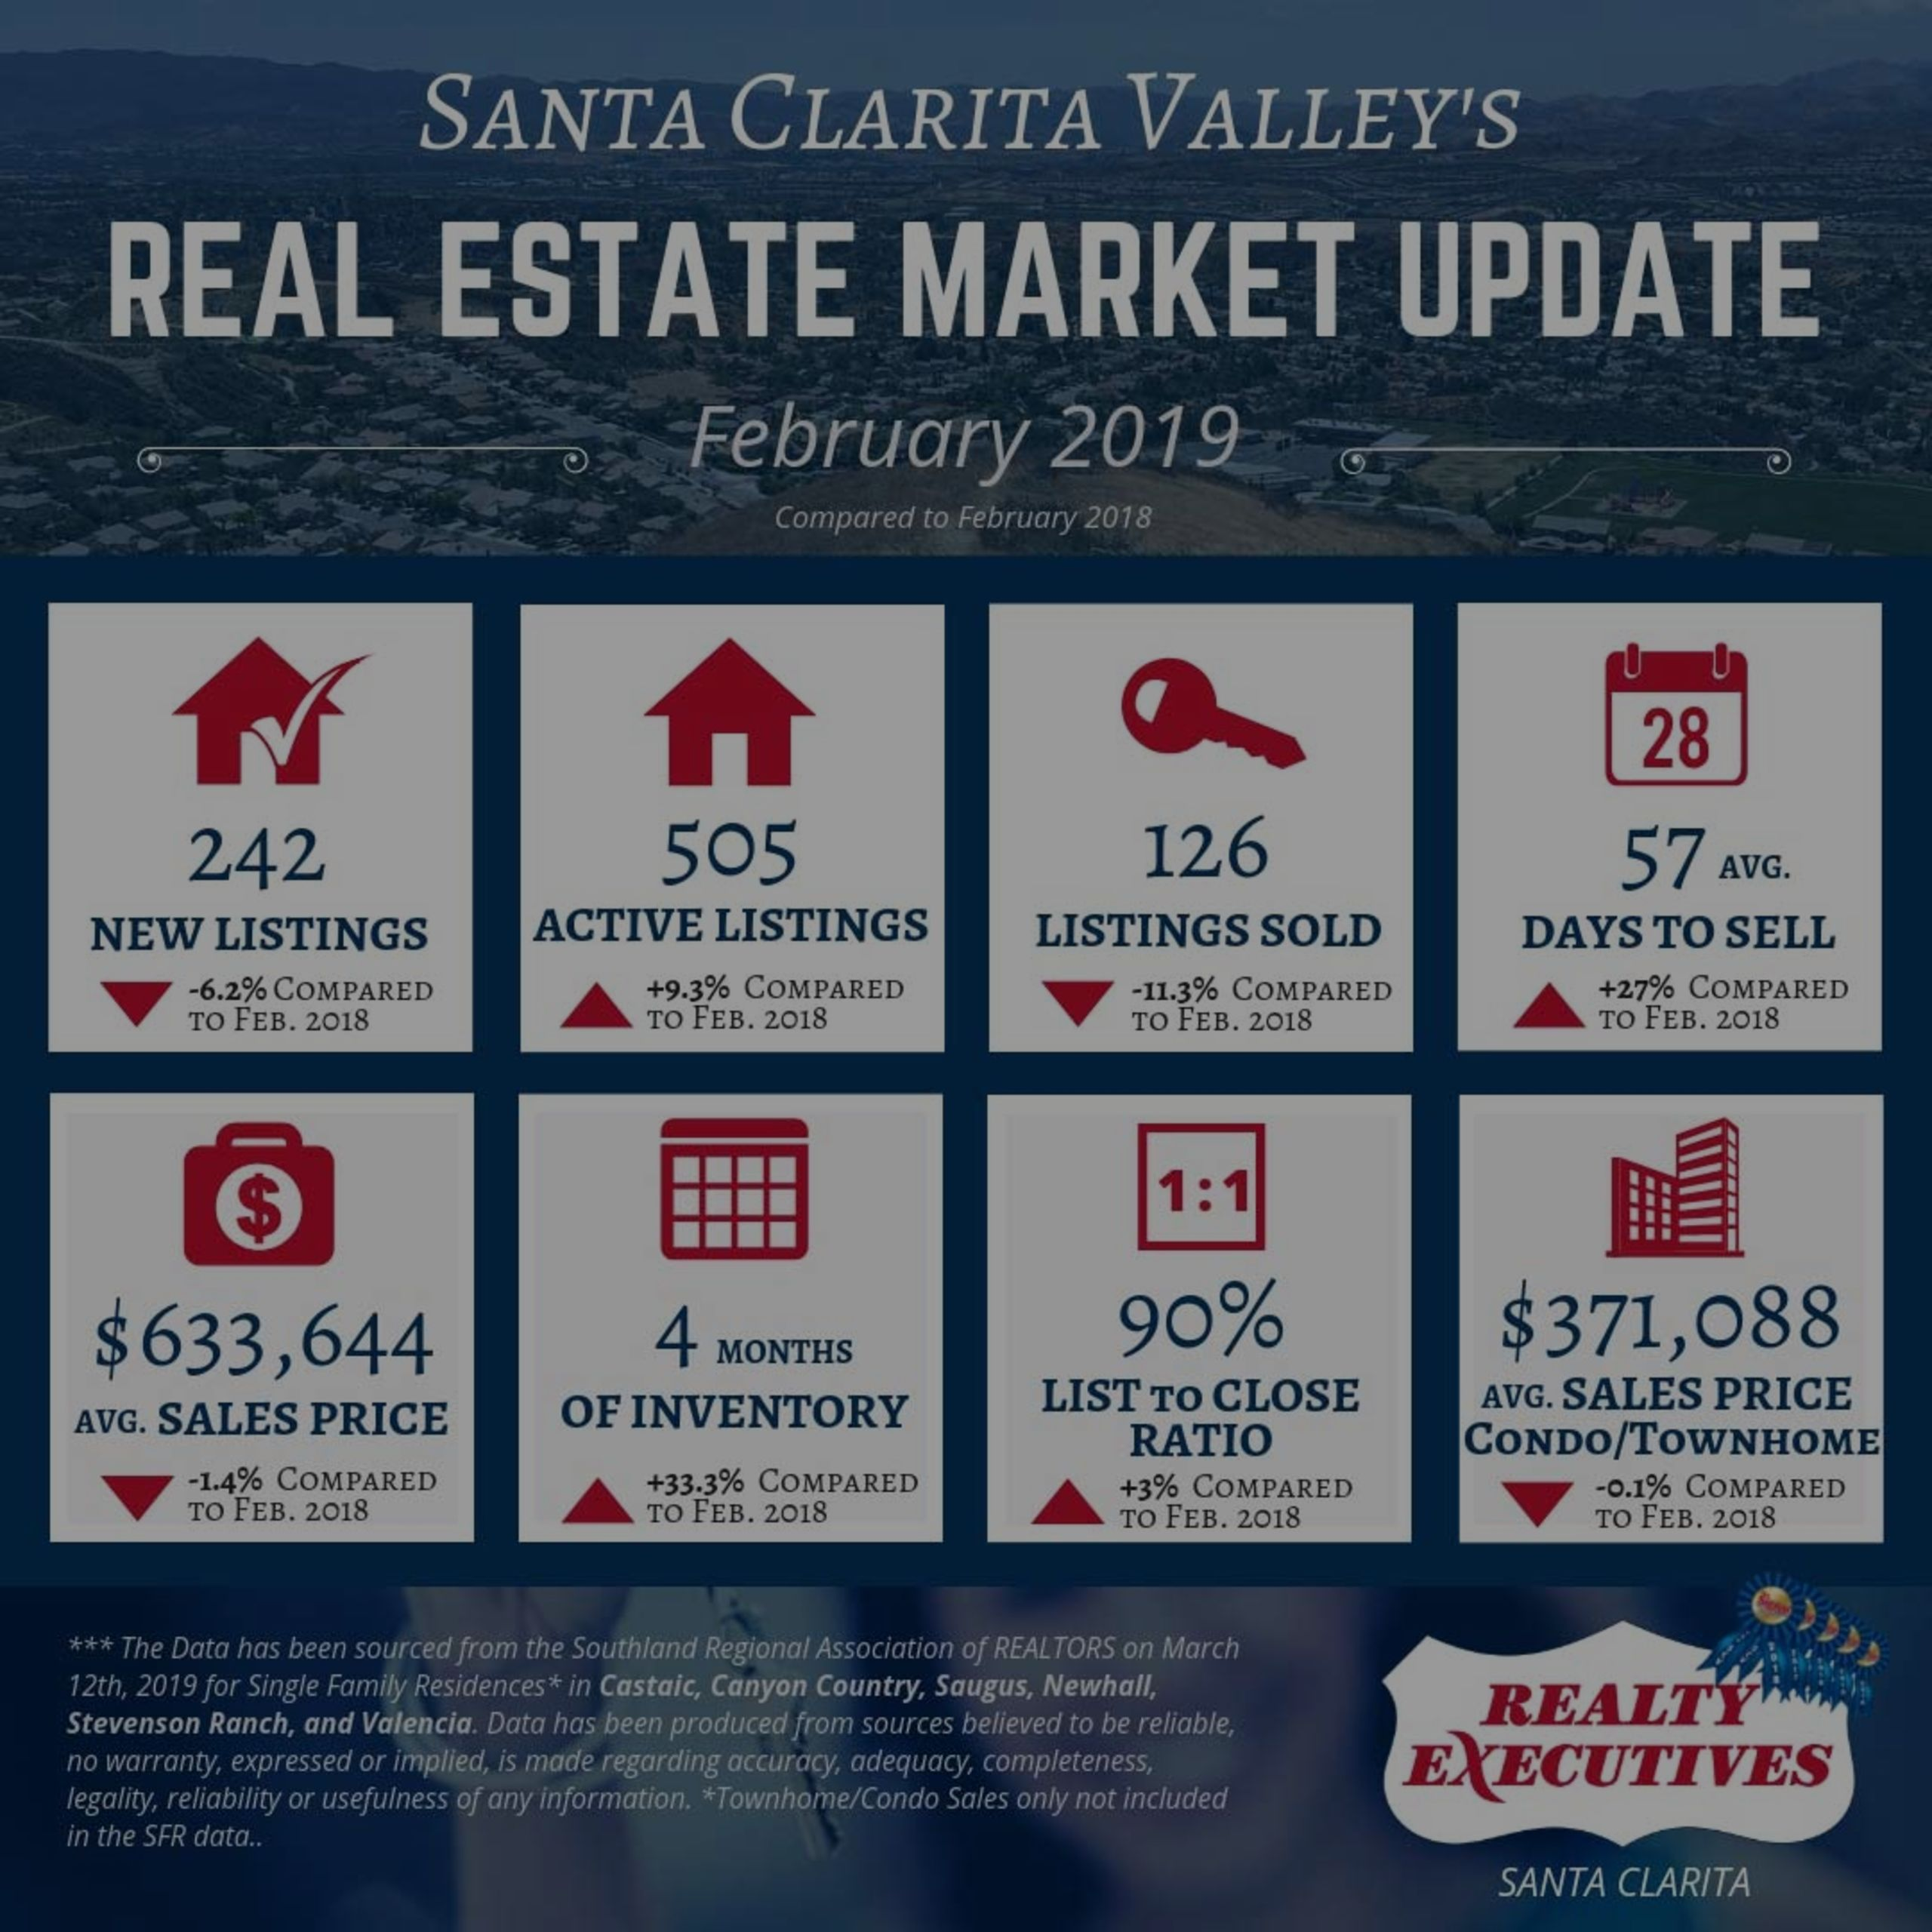 February 2019: Santa Clarita Valley Real Estate Market Update